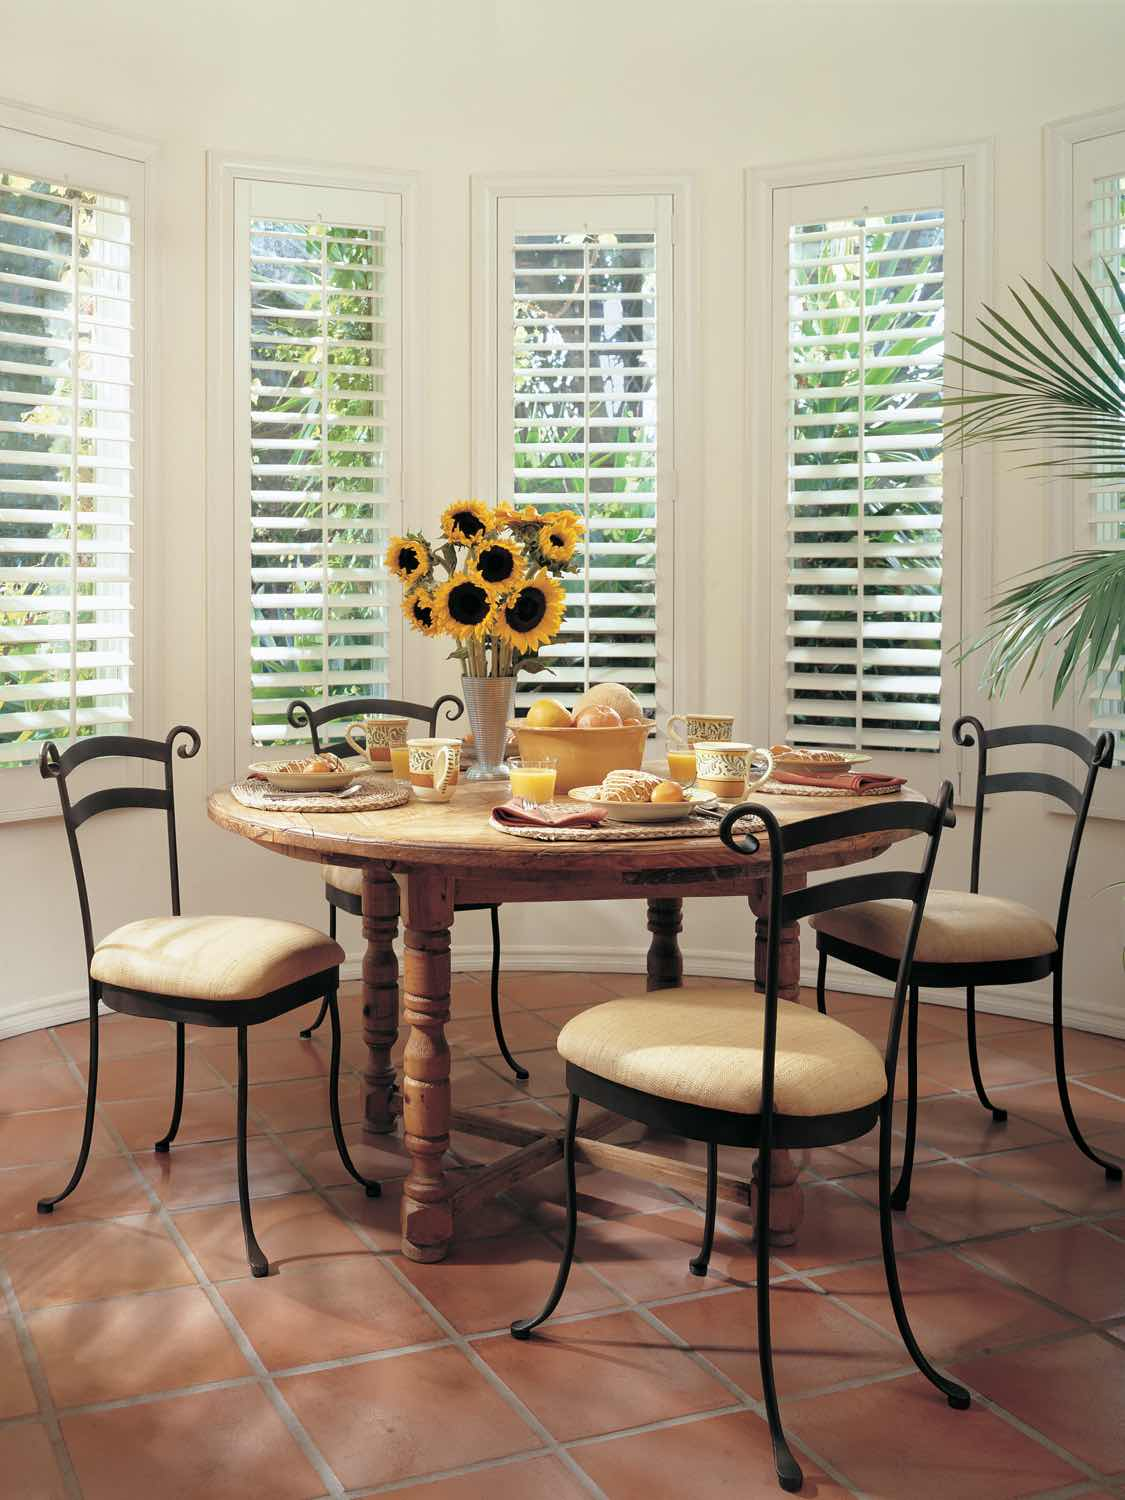 Interior Window Shutters - Today's Interiors